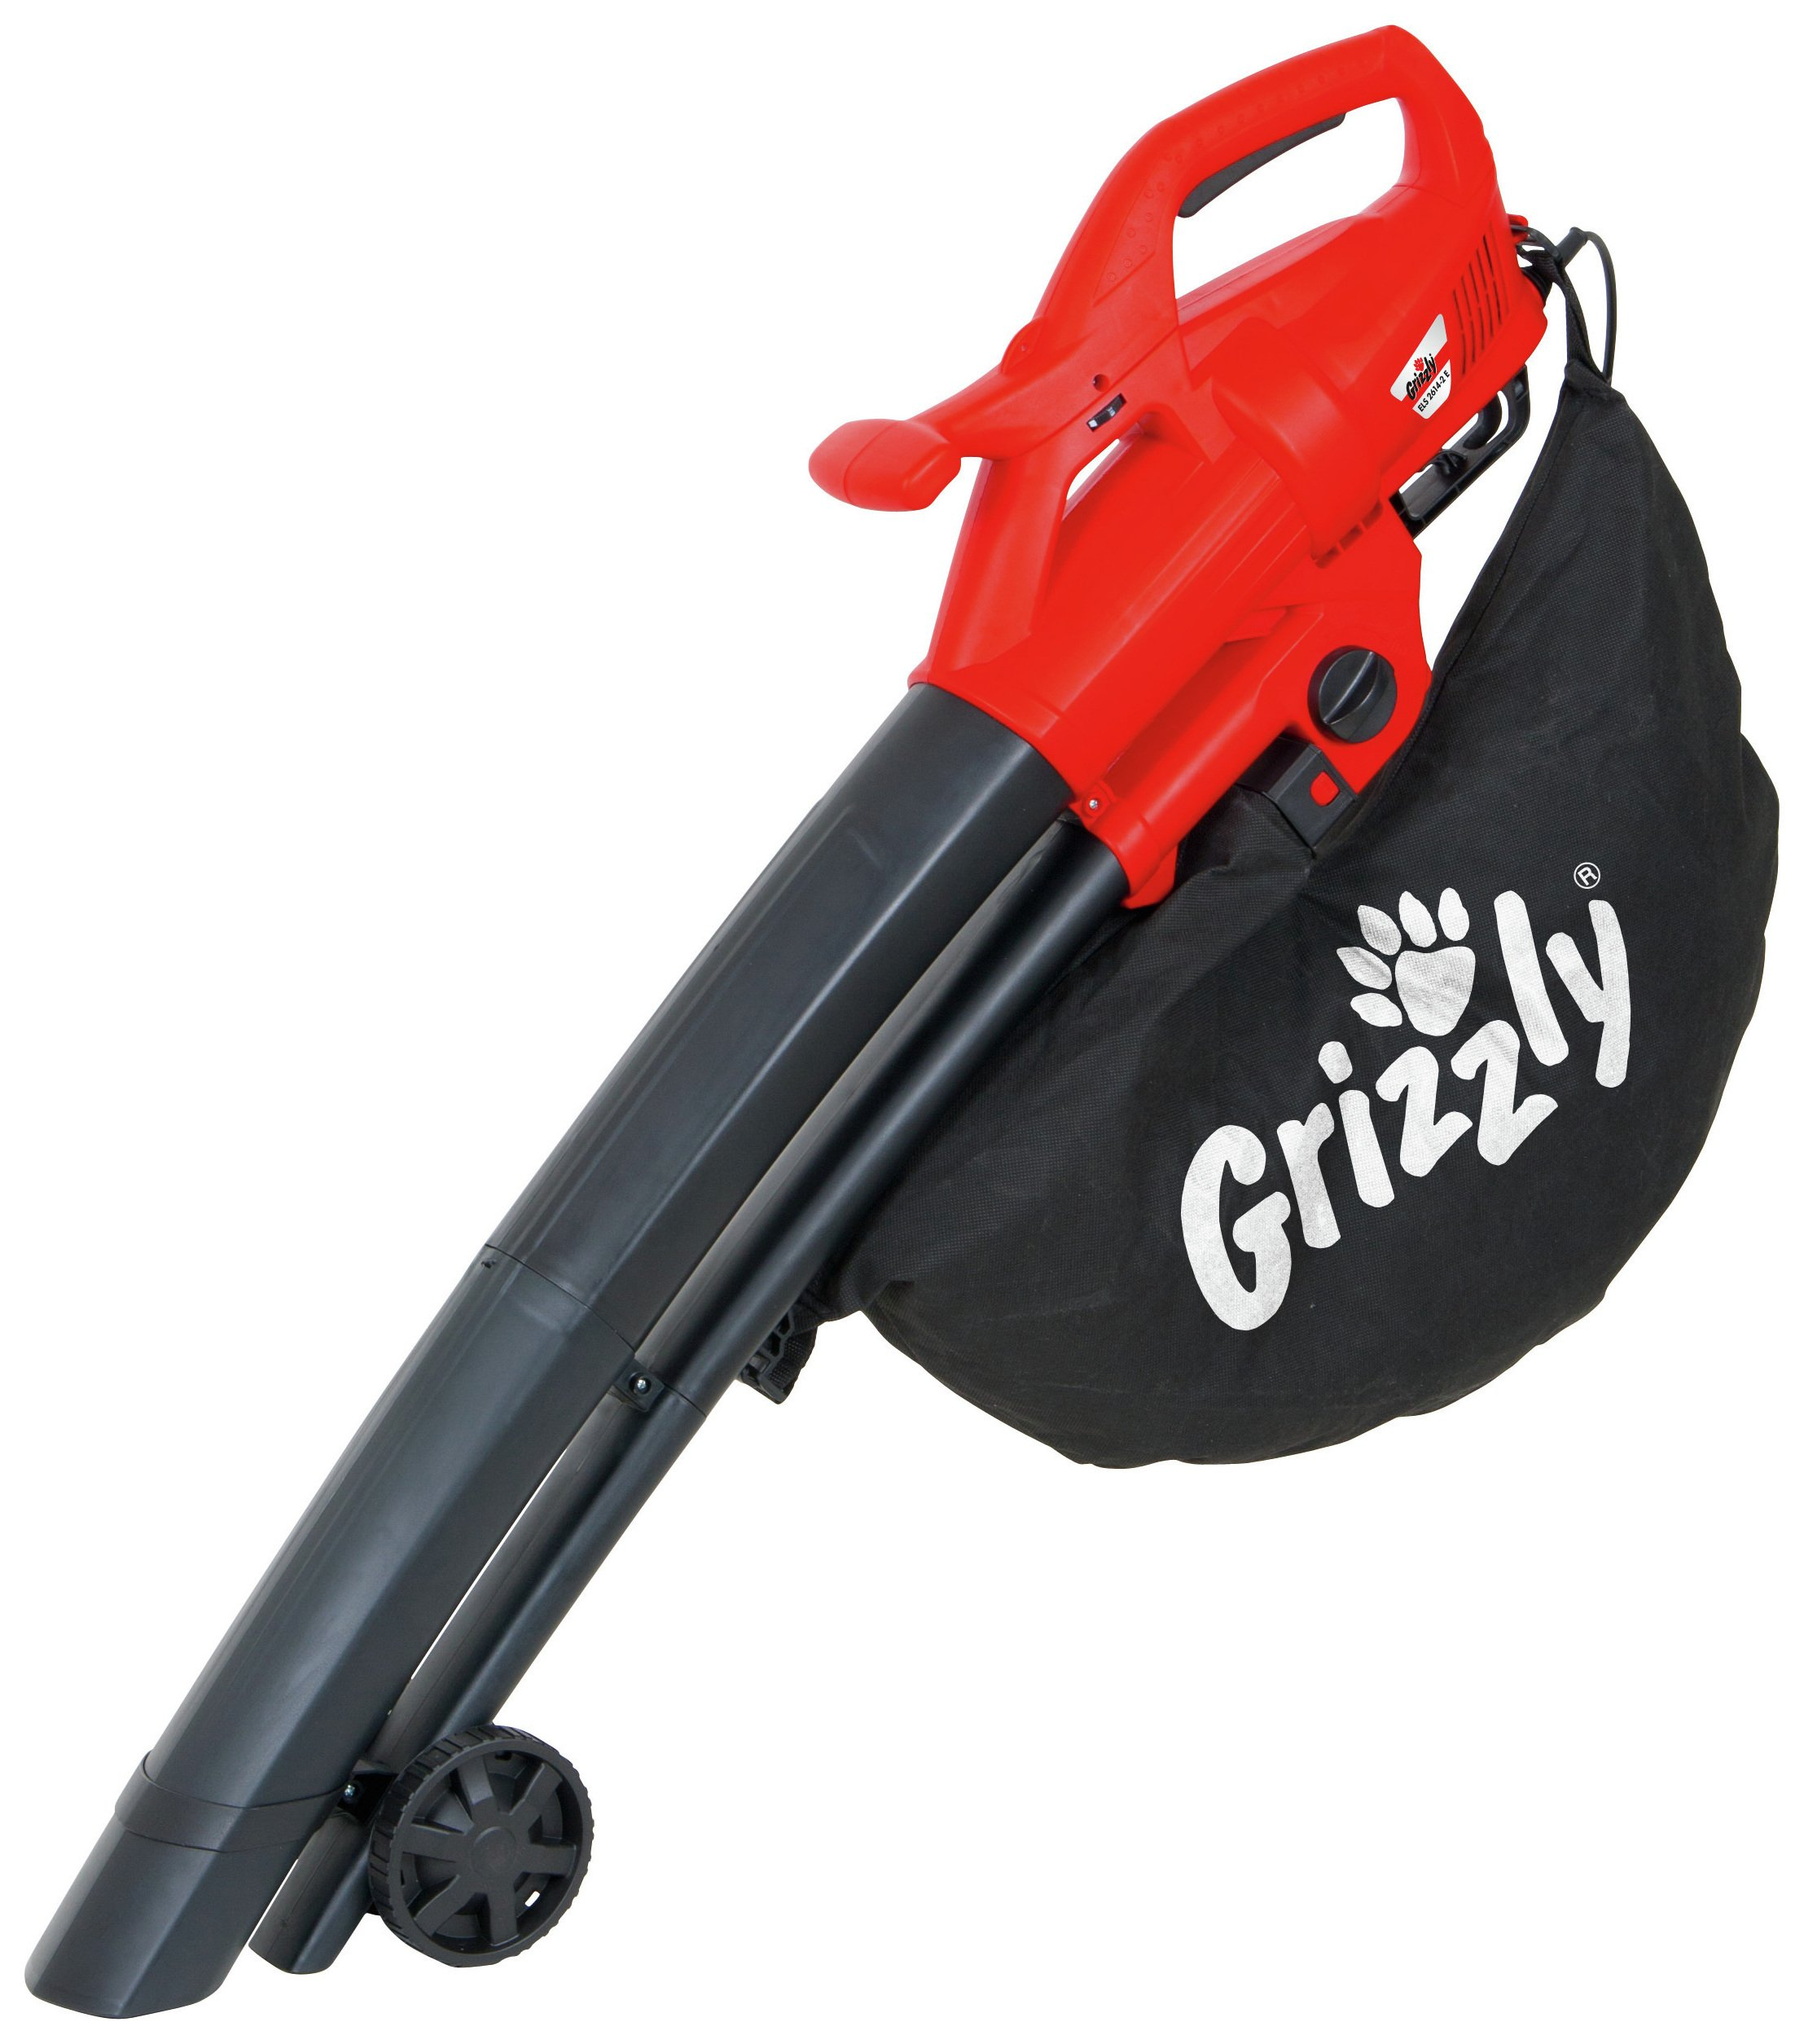 grizzly tools 3000w pro mulching corded leaf vacuum. Black Bedroom Furniture Sets. Home Design Ideas